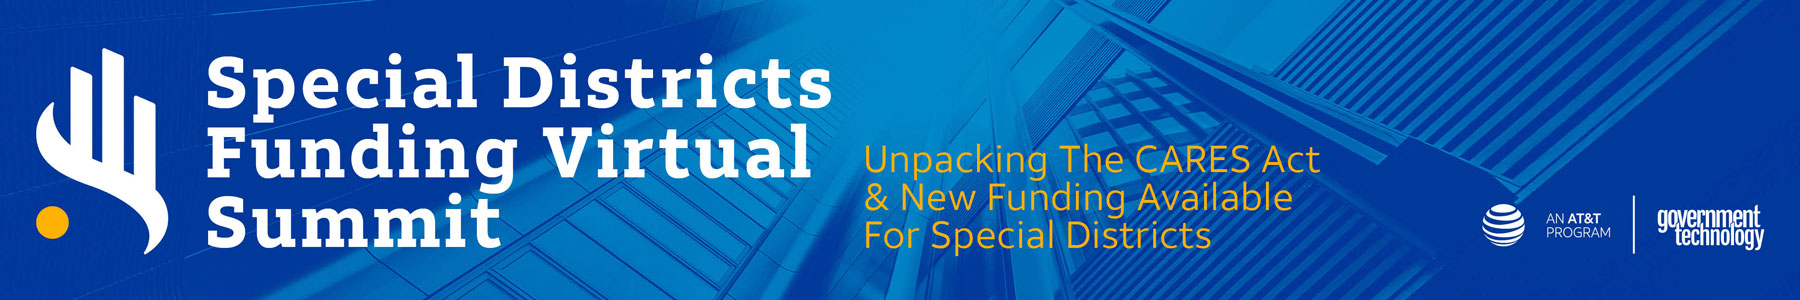 Special Districts Funding Virtual Summit | Unpacking The CARES Act & New Funding Available For Special Districts